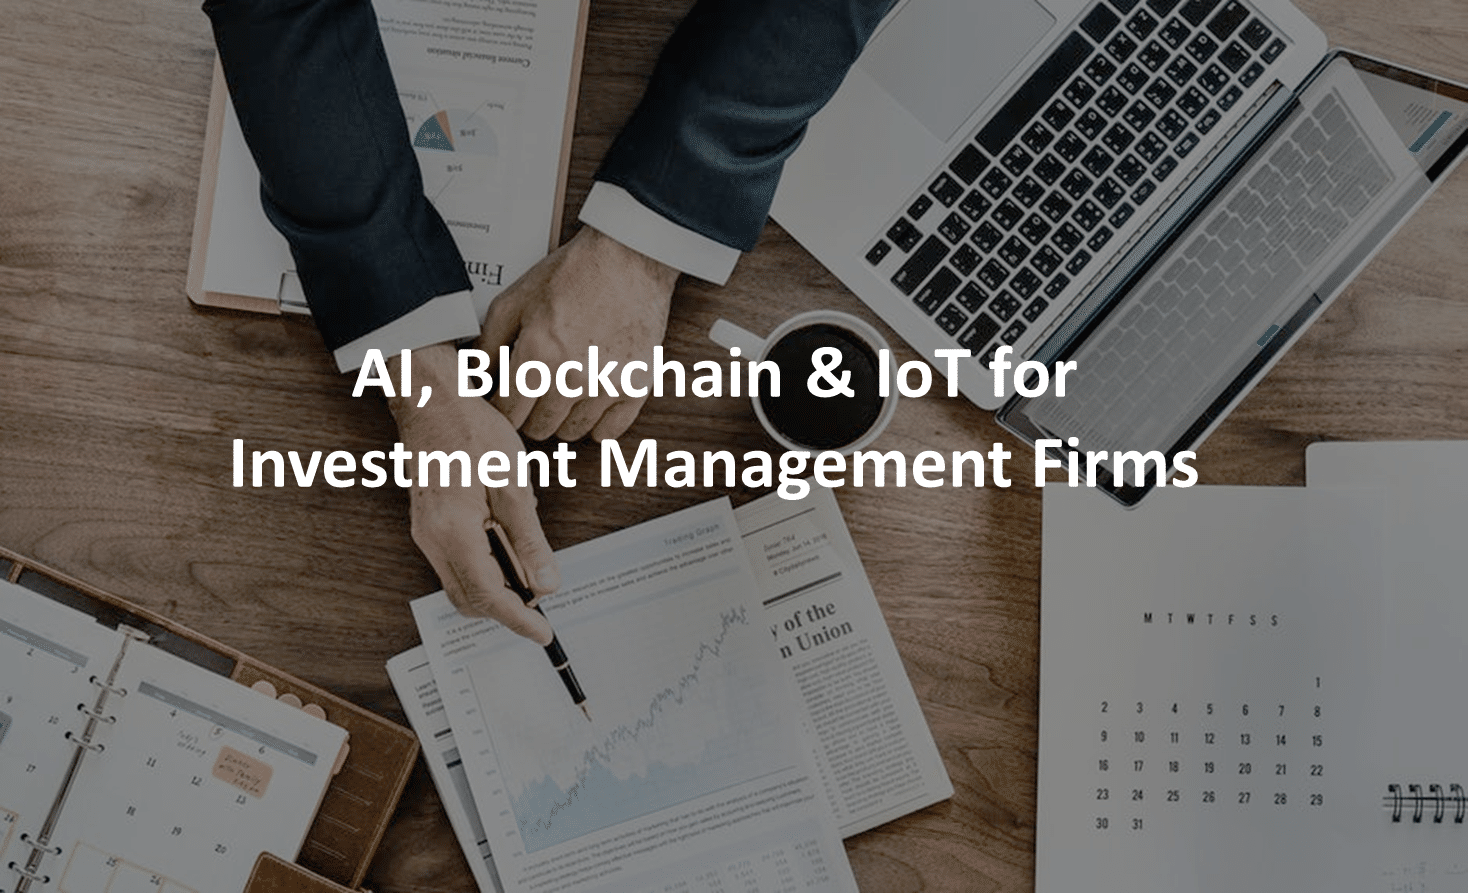 Adoption of AI, Blockchain & IoT Will Soon Become a Necessity for the Investment Management Firms